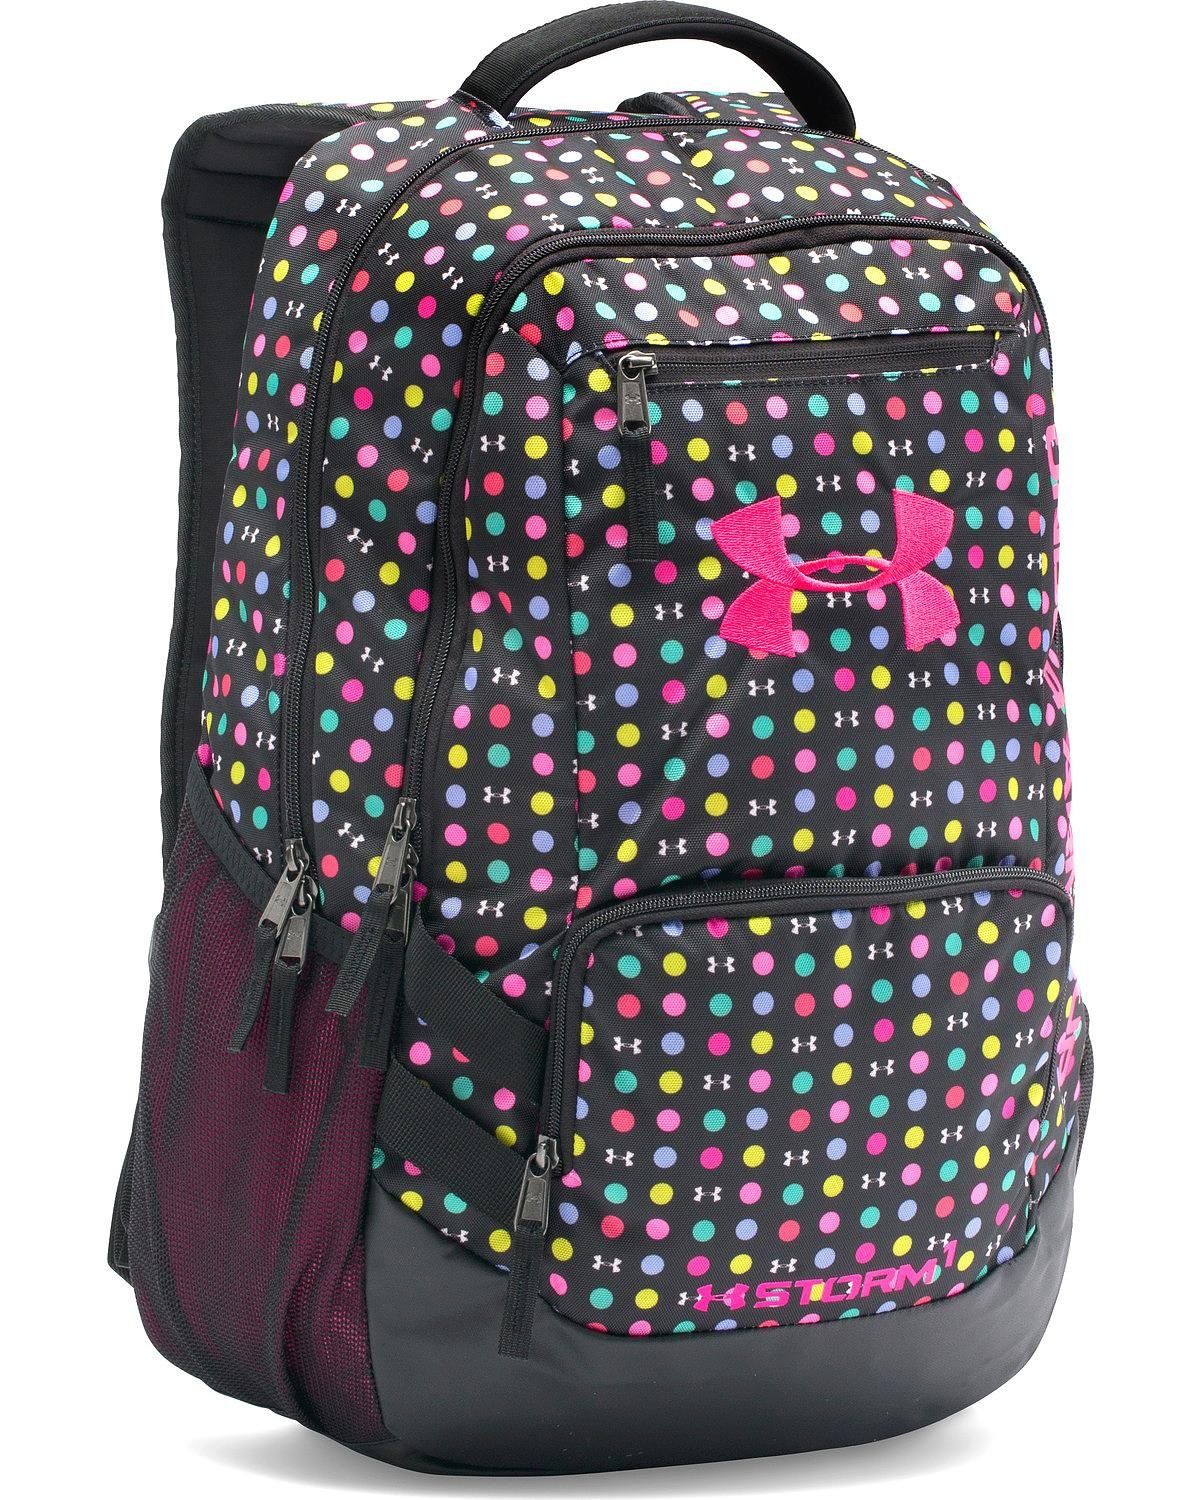 e0fc1bfb4fd4 Under Armour Storm Hustle II Backpack - Buy Online in Oman ...